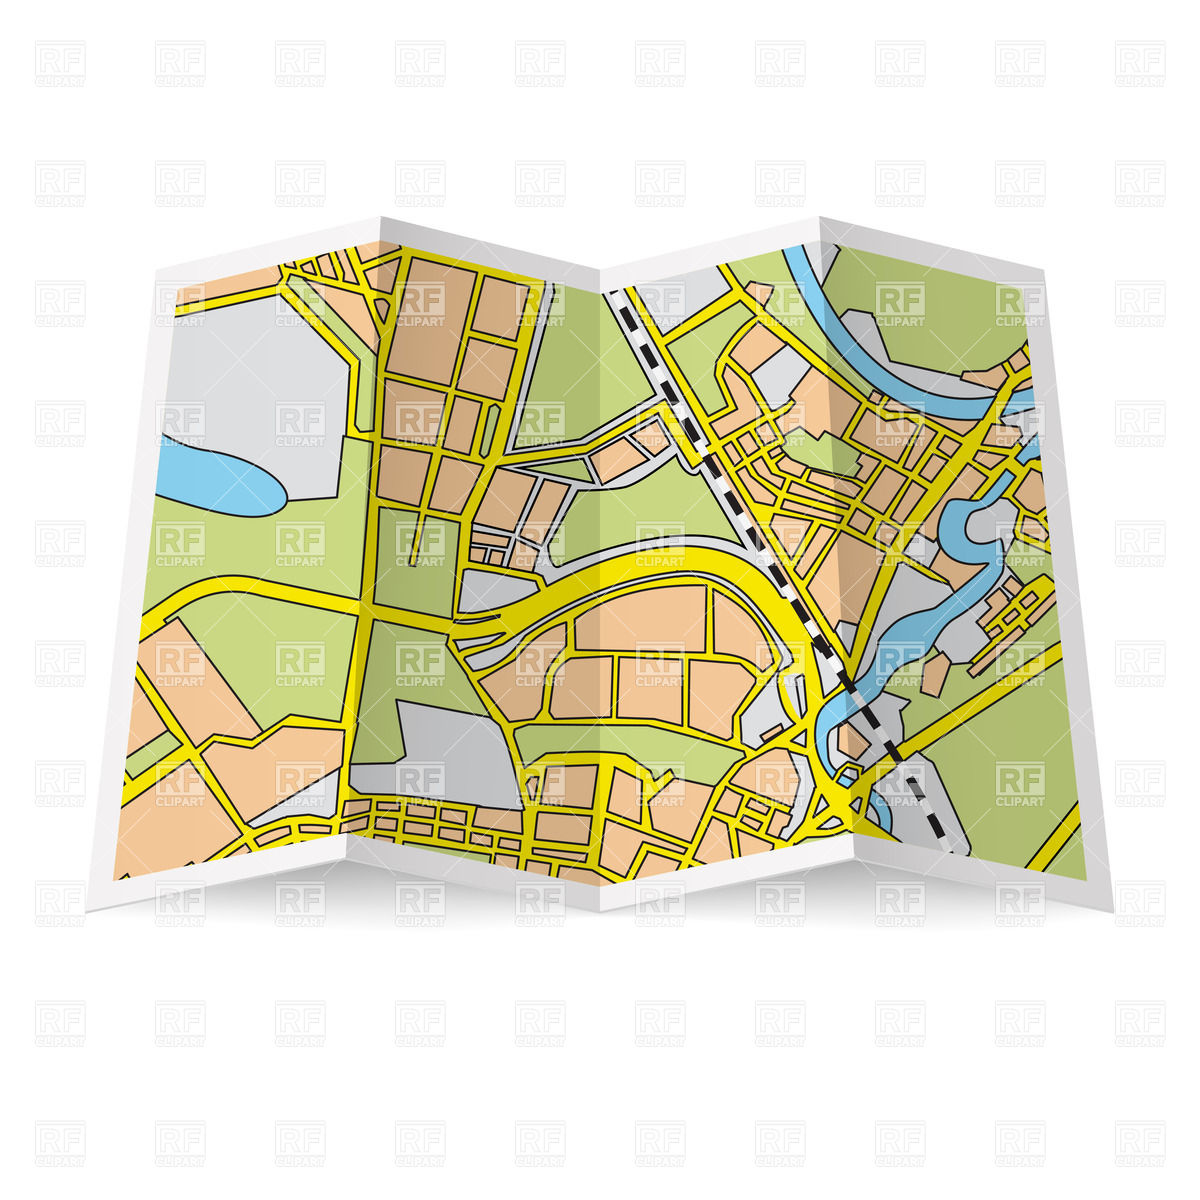 Abstract Folded Paper City Map 28501 Sig-Abstract Folded Paper City Map 28501 Signs Symbols Maps Download-14